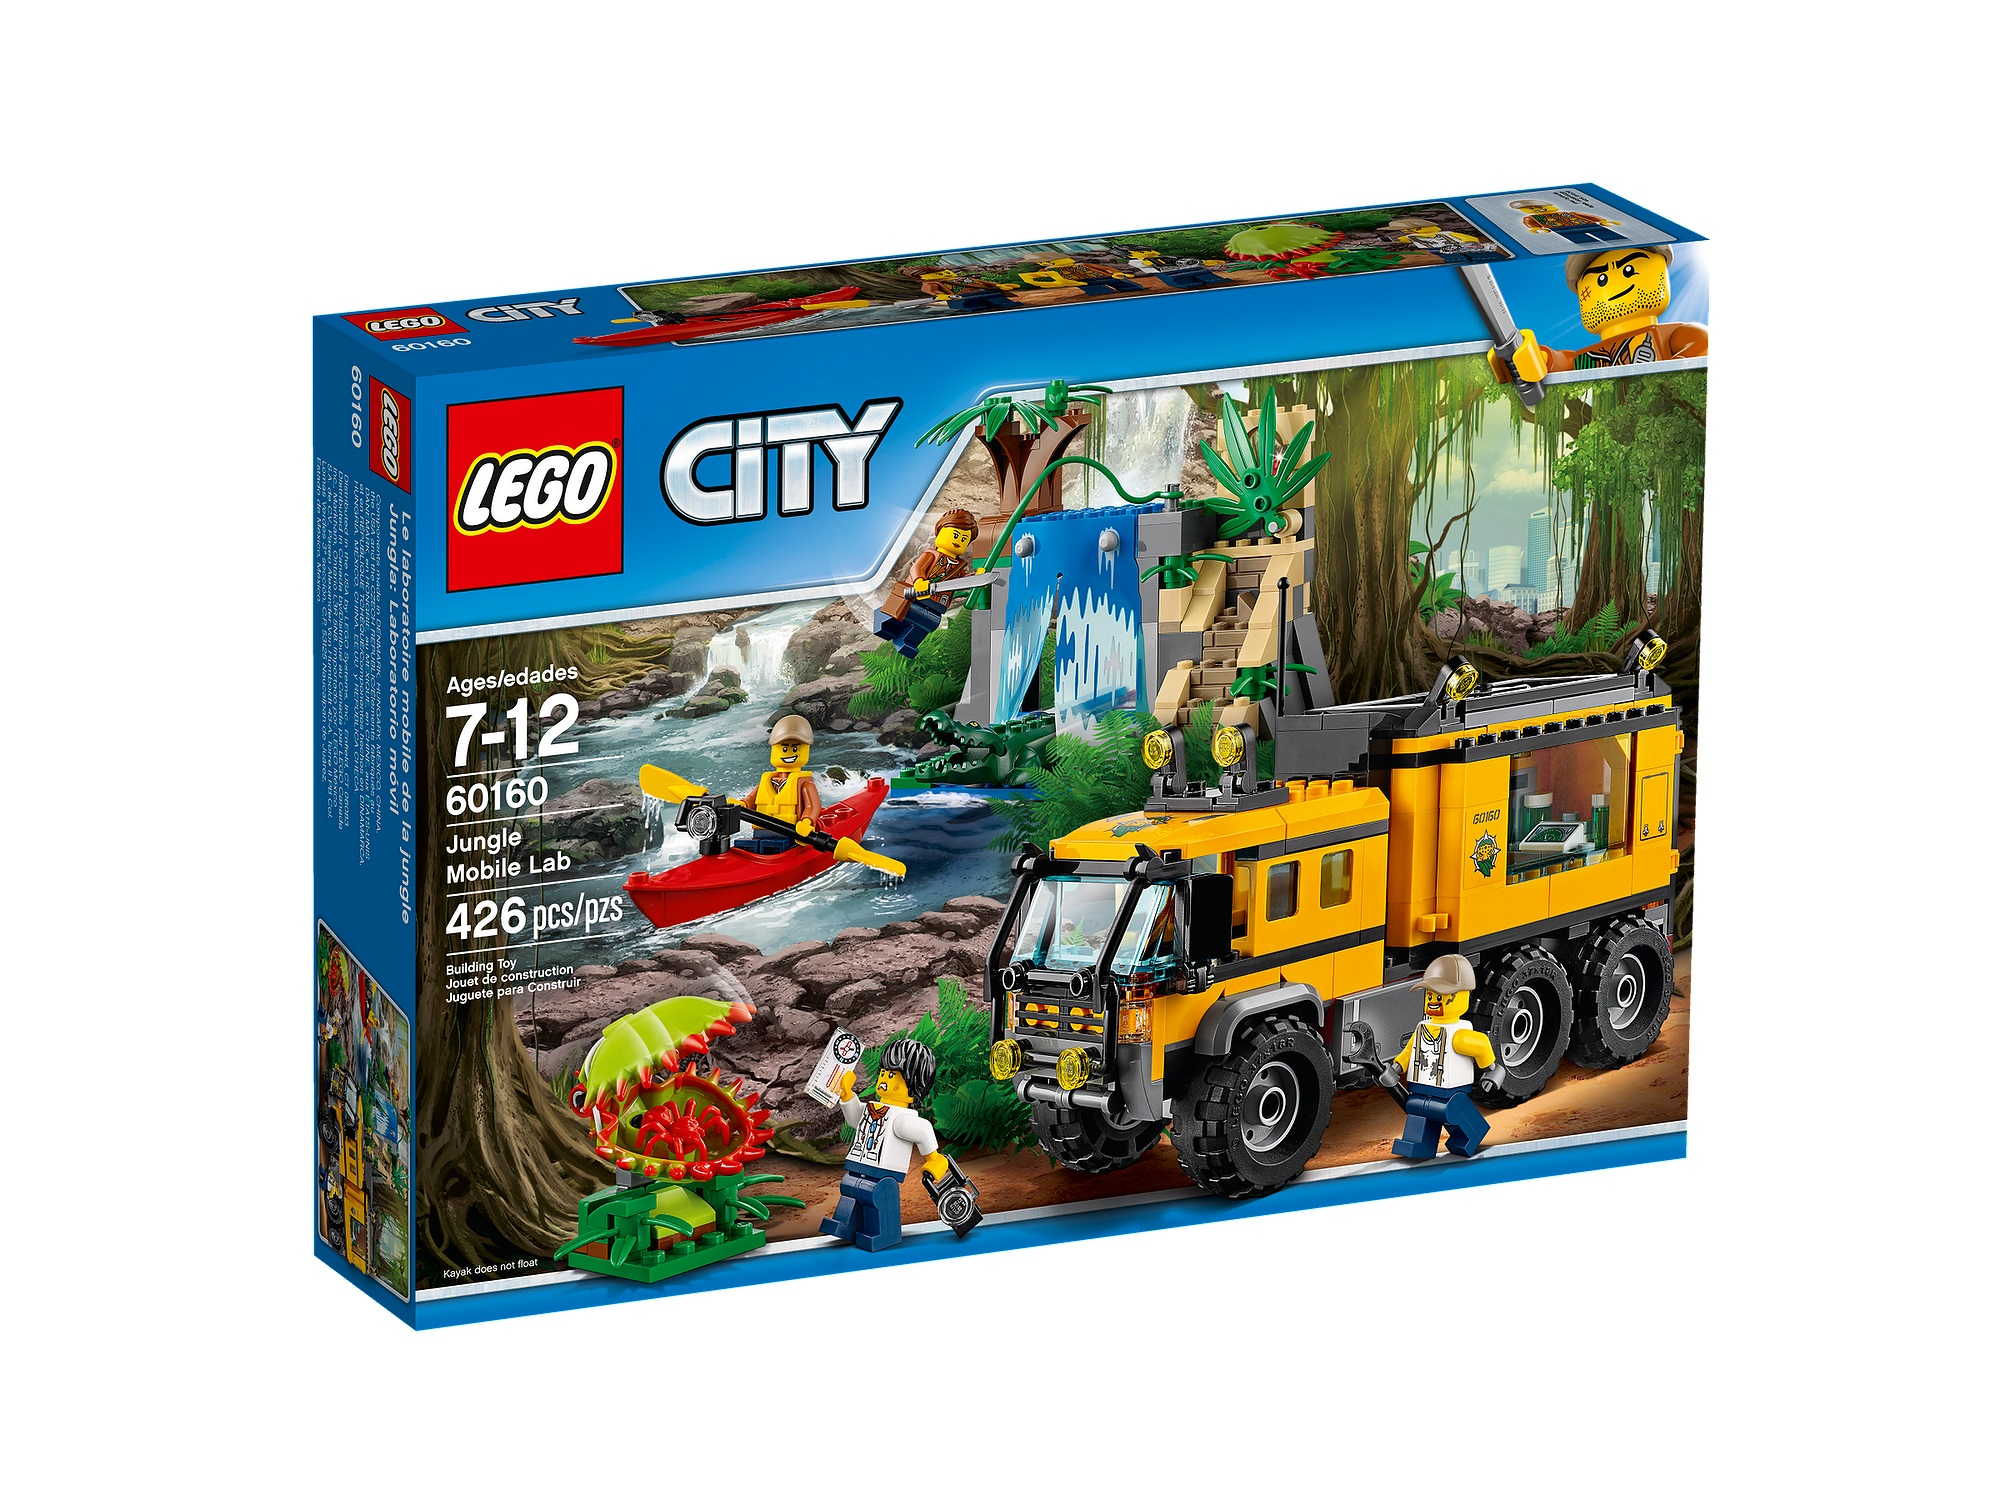 best starter plane with Preview Lego City Jungle 2017 Sets on Raf Red Arrows Hawk 50th Display Season Starter Set 1 72 together with Rc Field Box besides Preview Lego City Jungle 2017 Sets as well Minimalist moreover Jump Starter Power Bank.